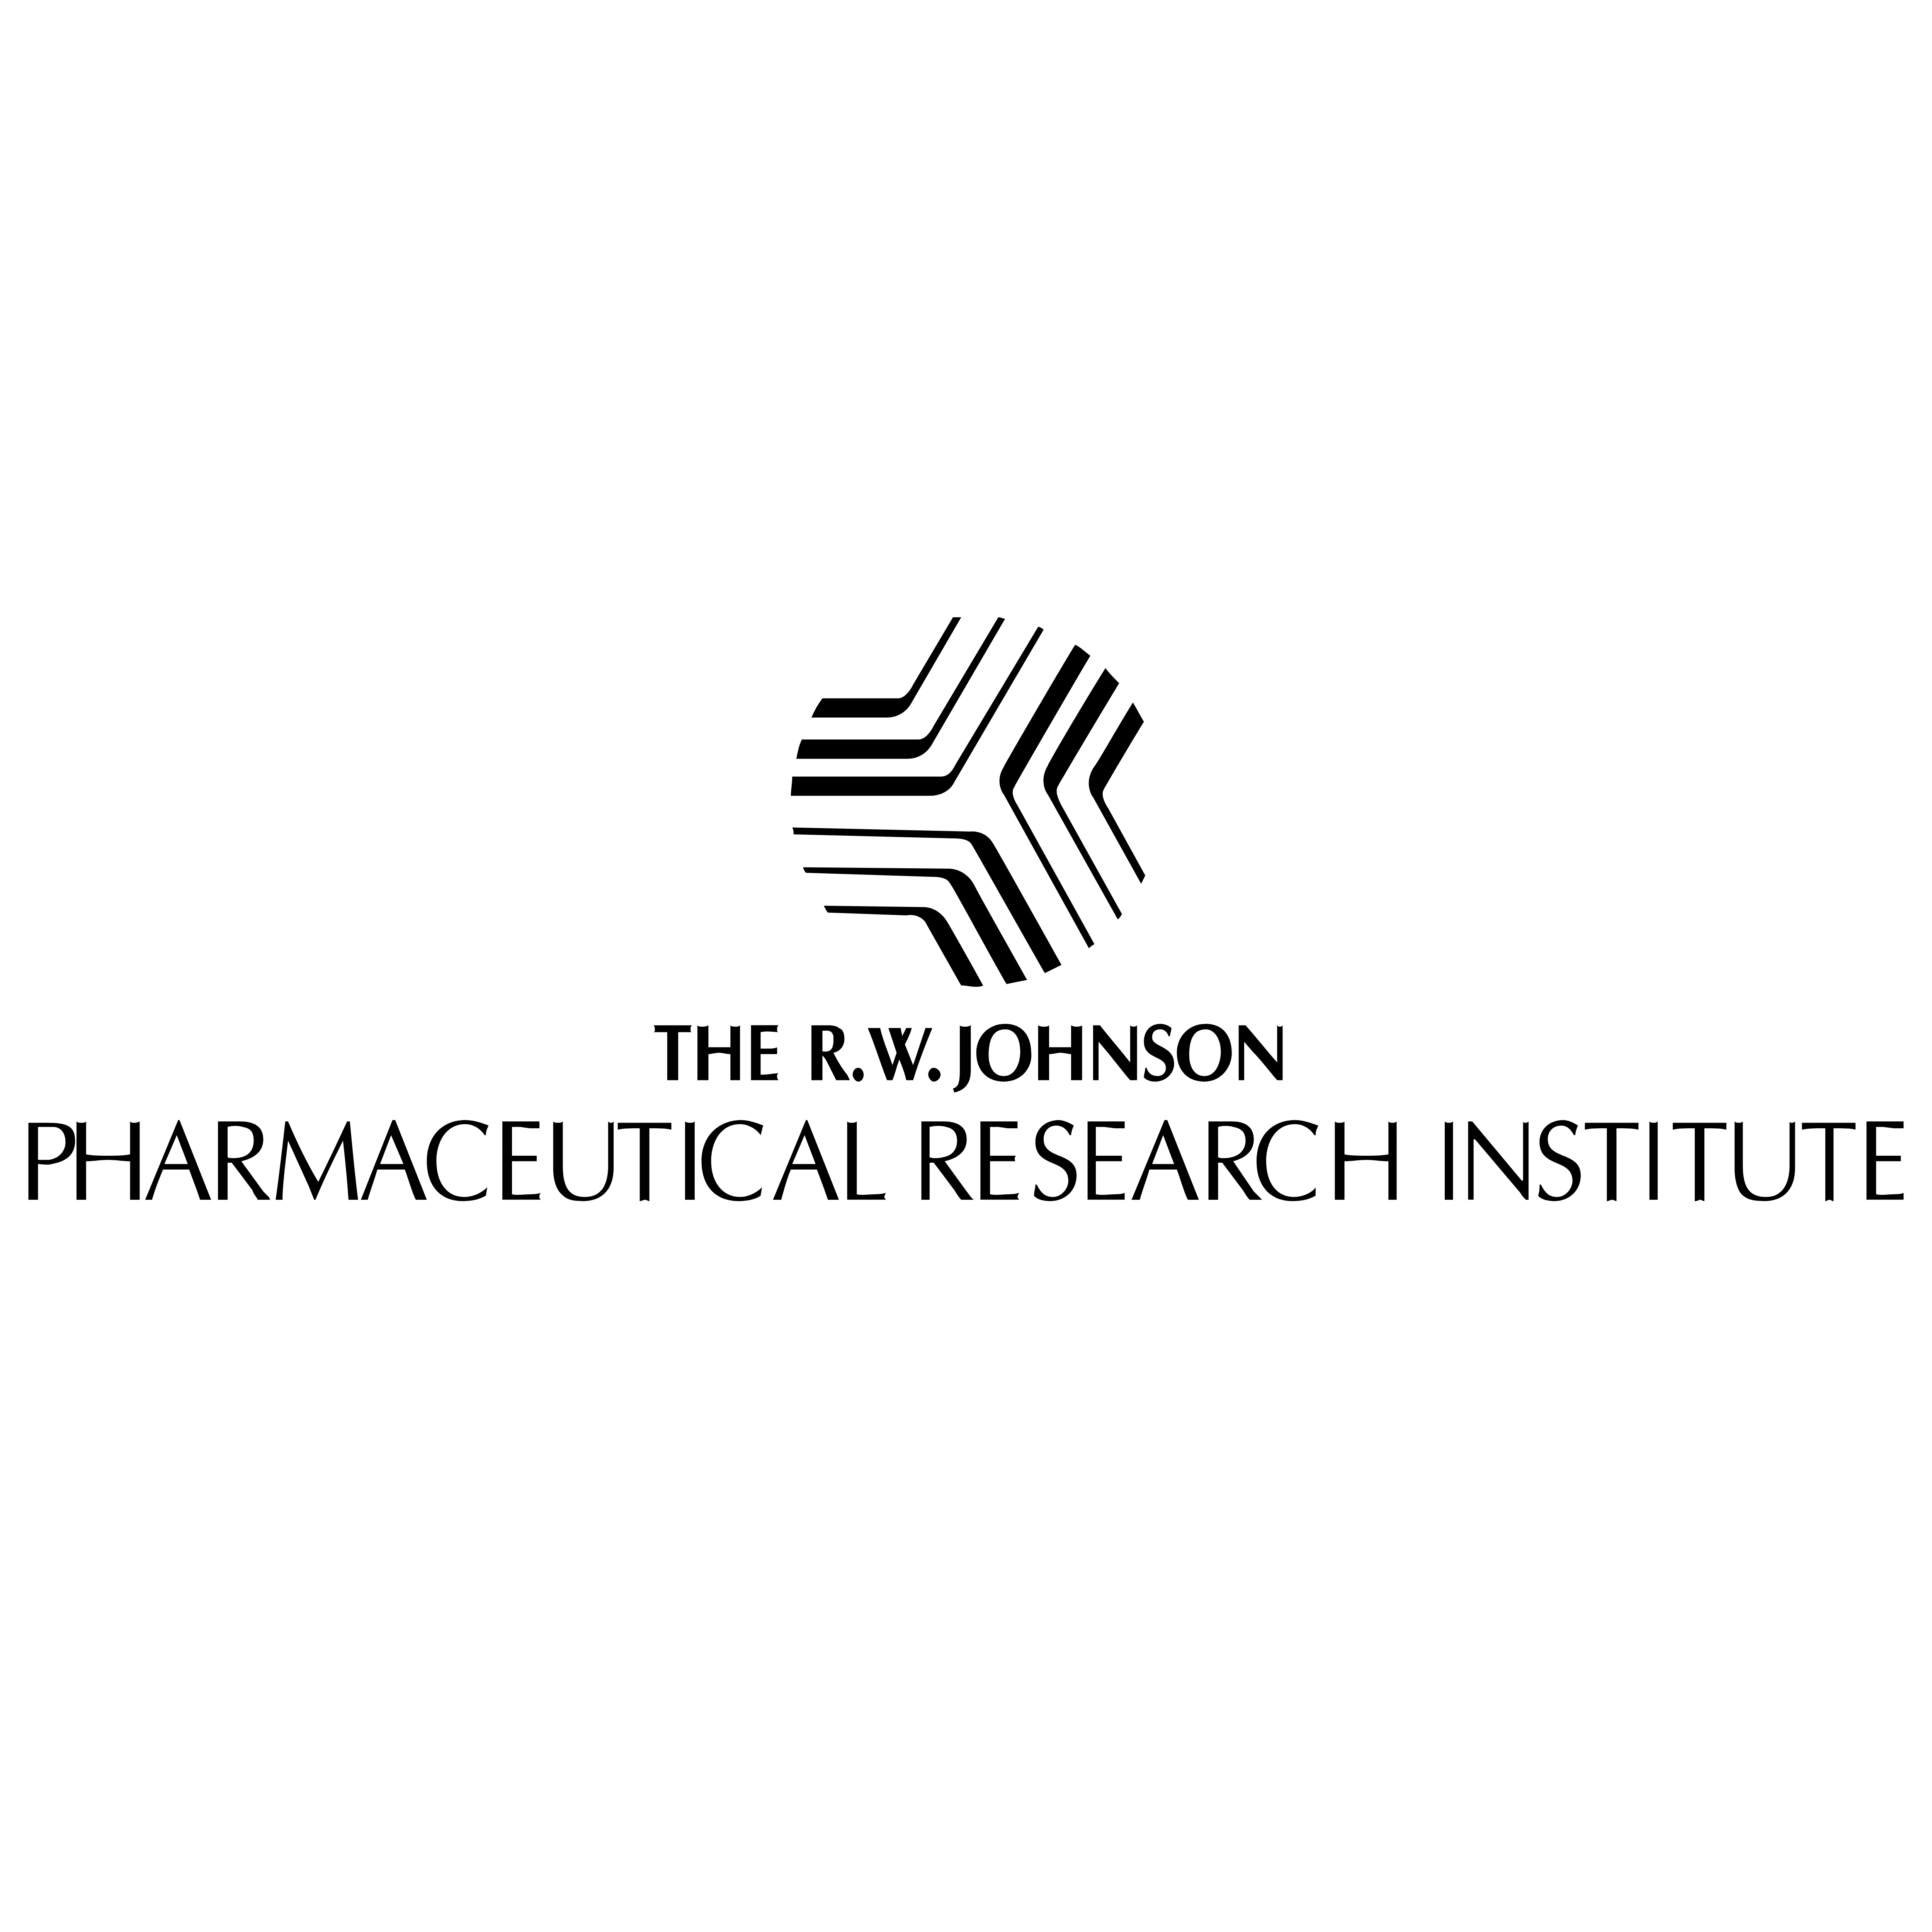 The R W Johnson Pharmaceutical Research Institute Logos Download